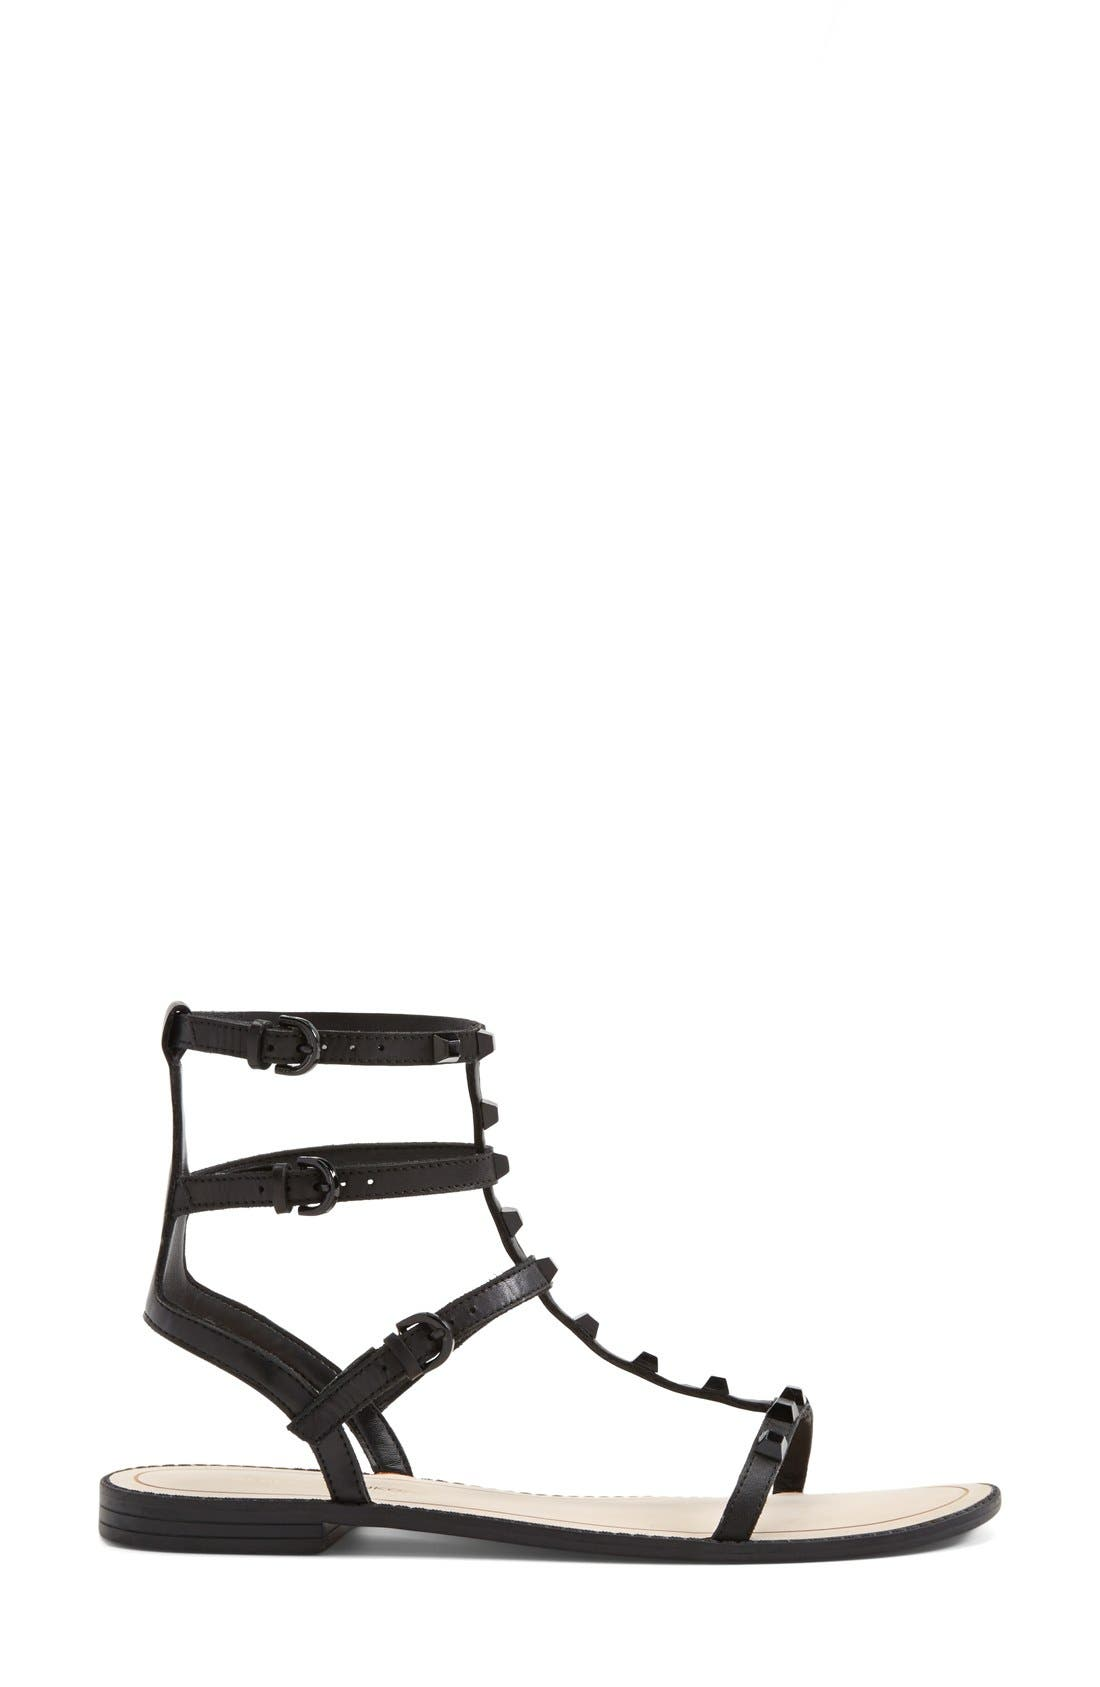 'Georgina' Studded Leather Sandal,                             Alternate thumbnail 4, color,                             Black